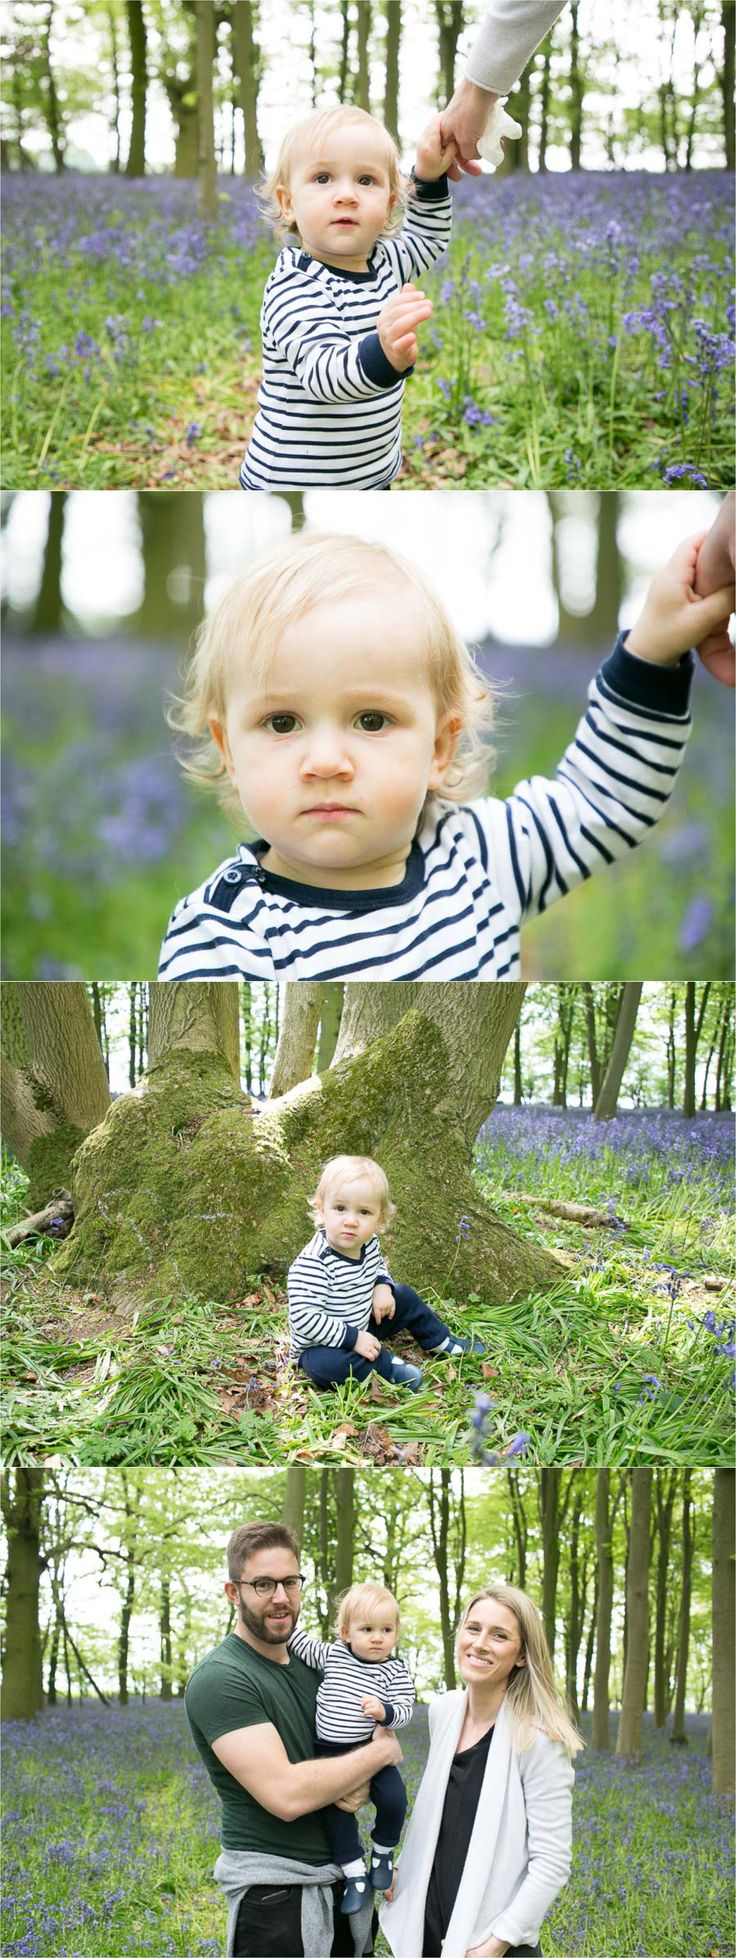 saffron walden family photography in bluebell woods, see more here http://rebeccaprigmorephotography.com/first-birthday-shoot-bluebell-woods-saffron-walden/